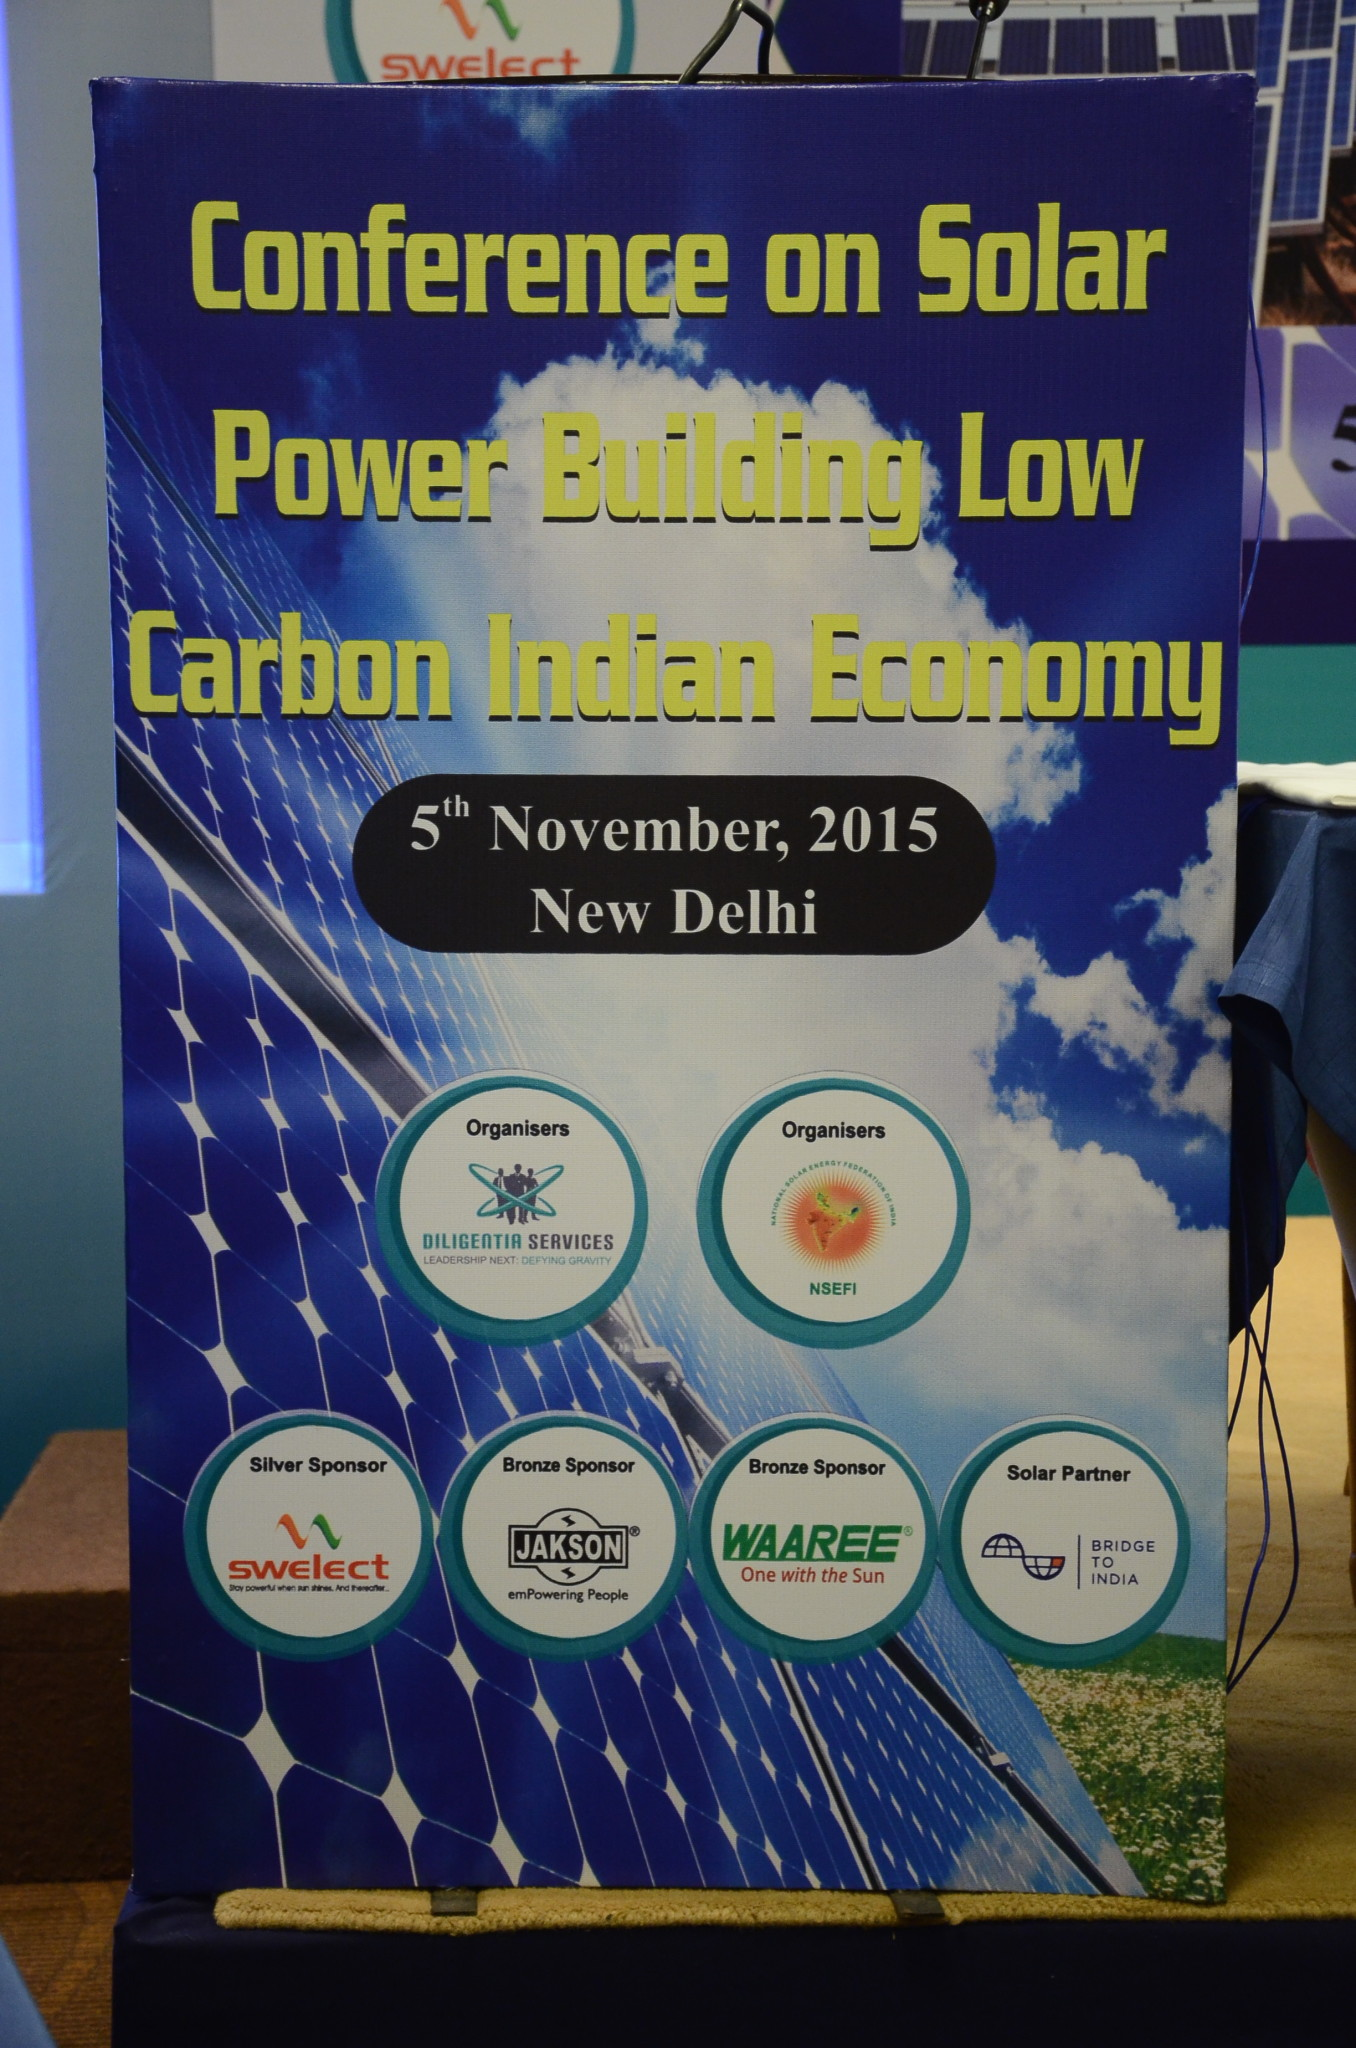 Conference On Solar Power Building Low carbon India Economy